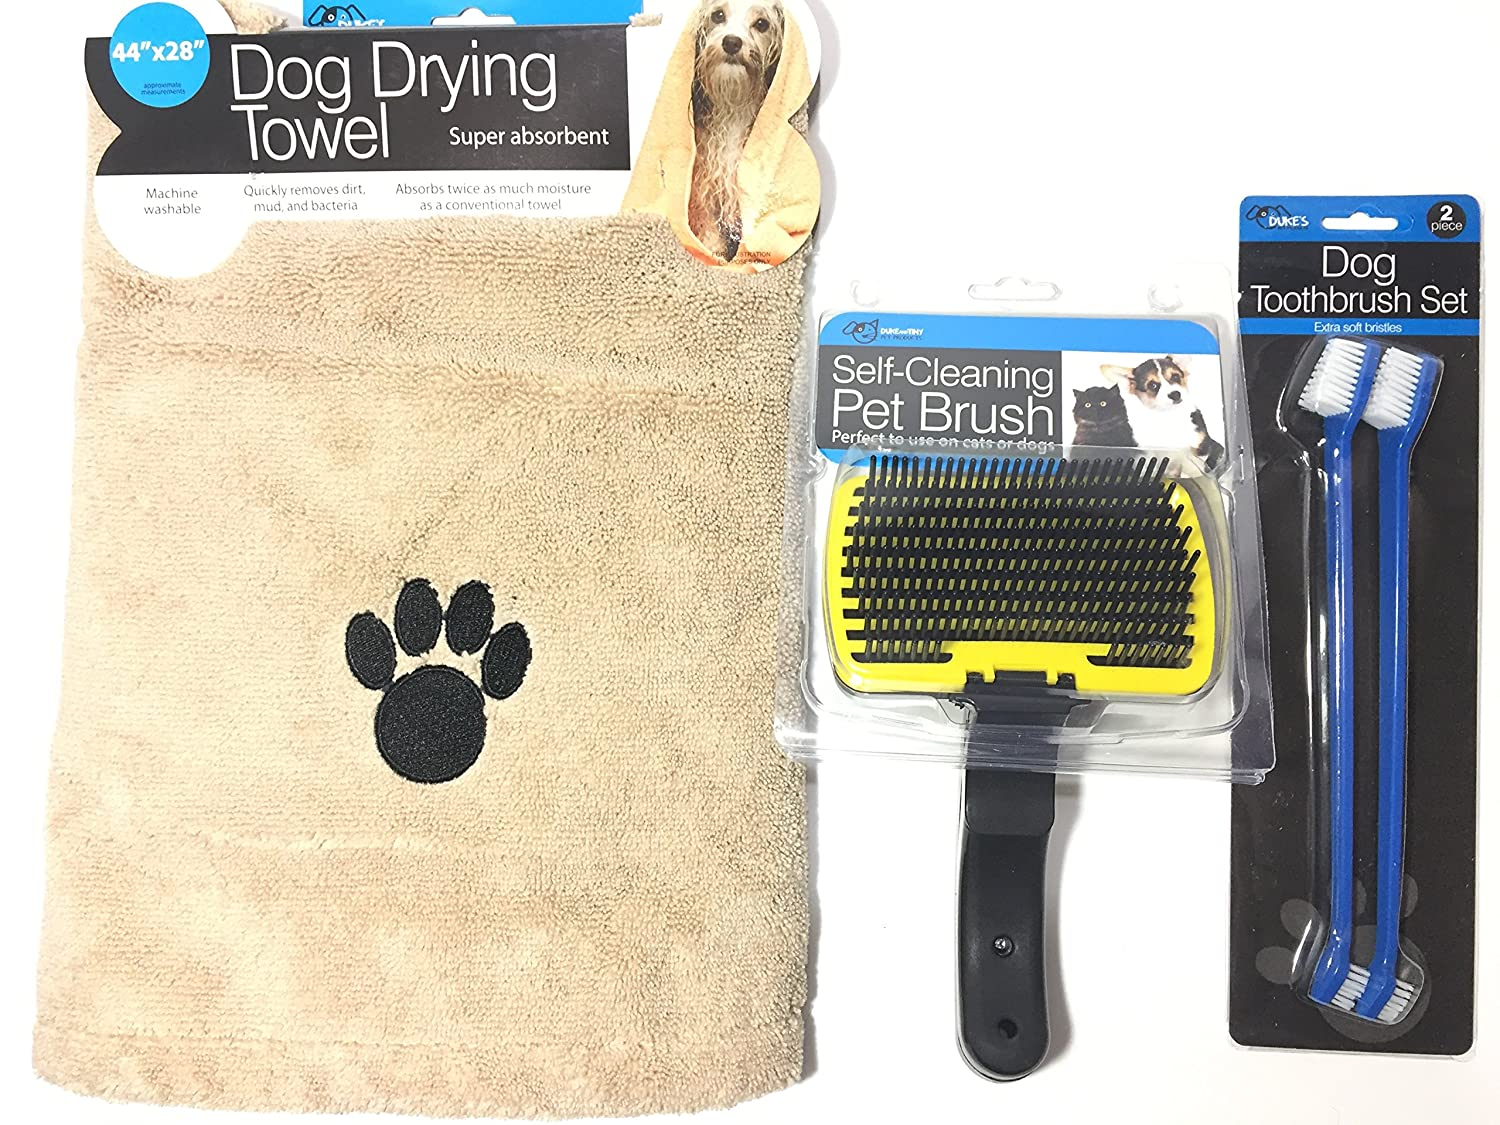 Dog Grooming Kit, It Includes, Pet Bath Cloth Towel Absorbent Quick Dry, Pet Toothbrush Gentle Dual Headed Cleaner Tough Dental Care + Self Cleaning Slicker Brush, Good for Lg, M and Sm size Dogs,